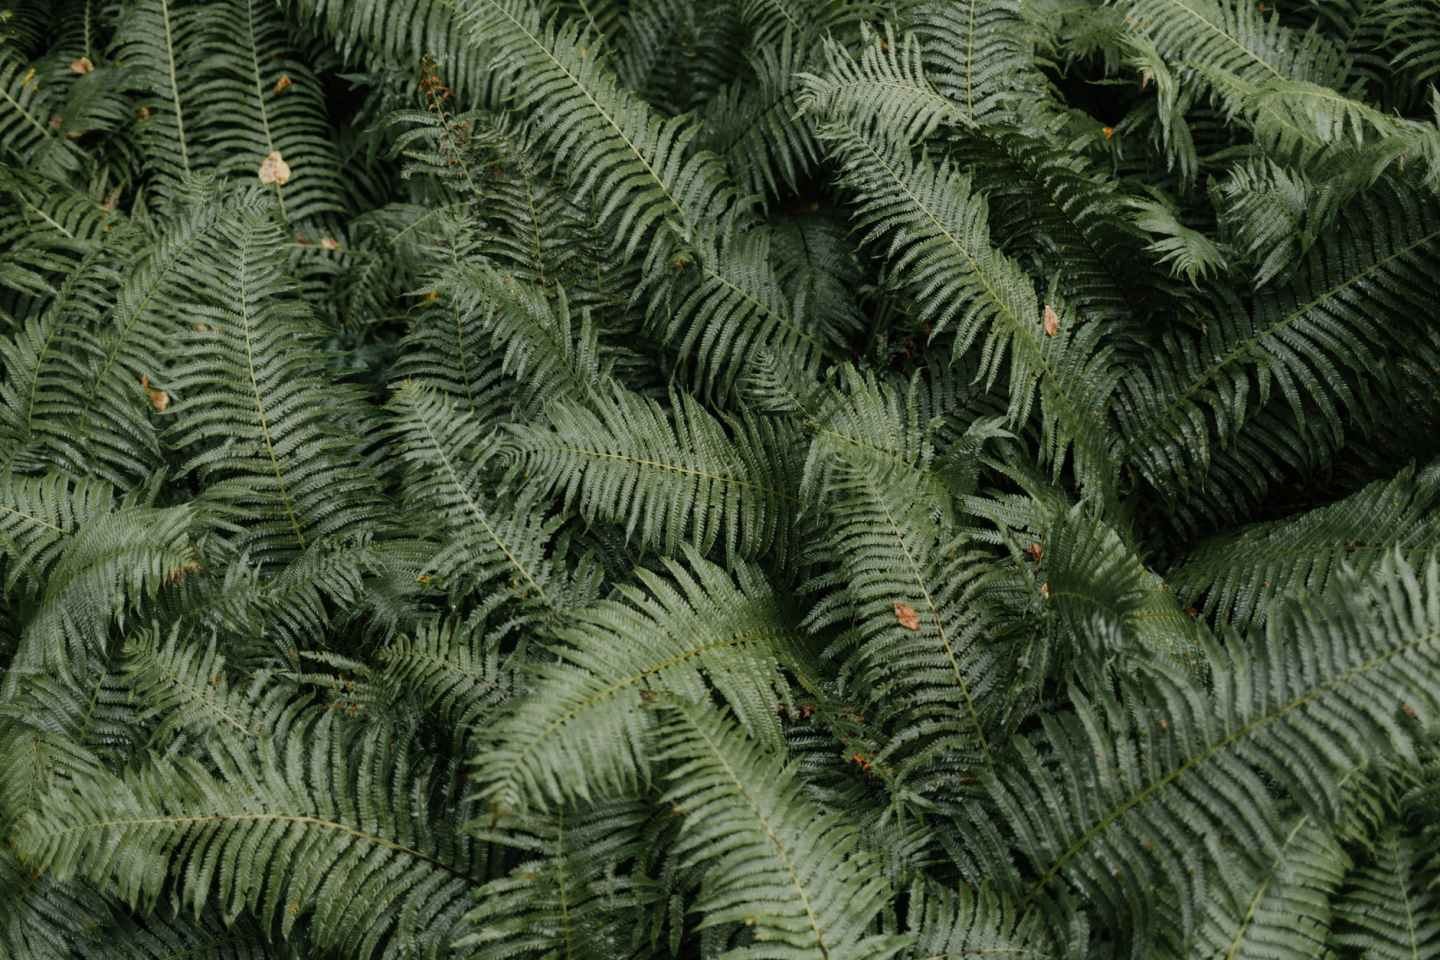 lush green fern leaves in nature